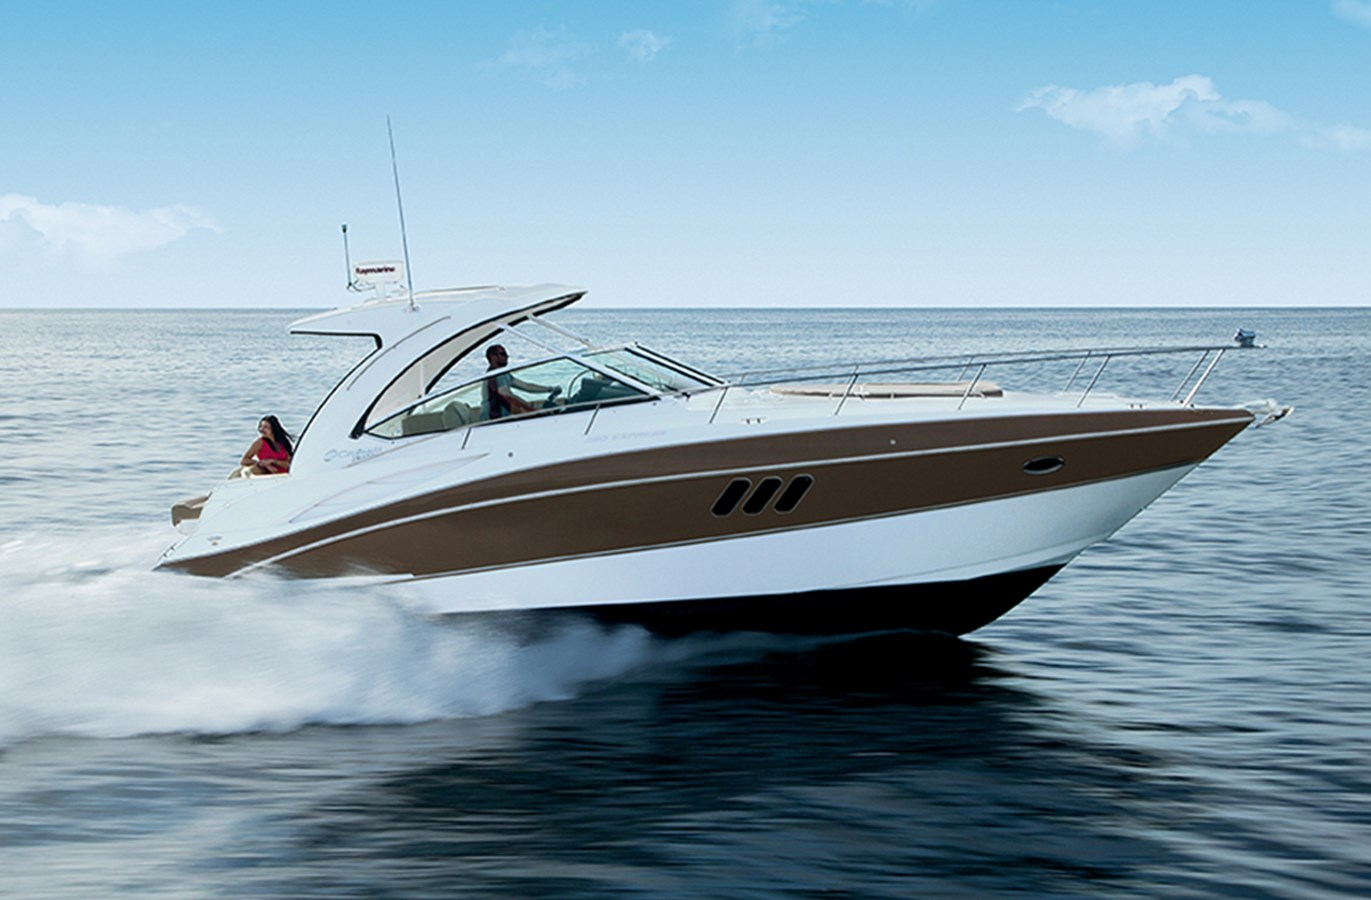 New Cruisers 380 Express Yachts For Sale